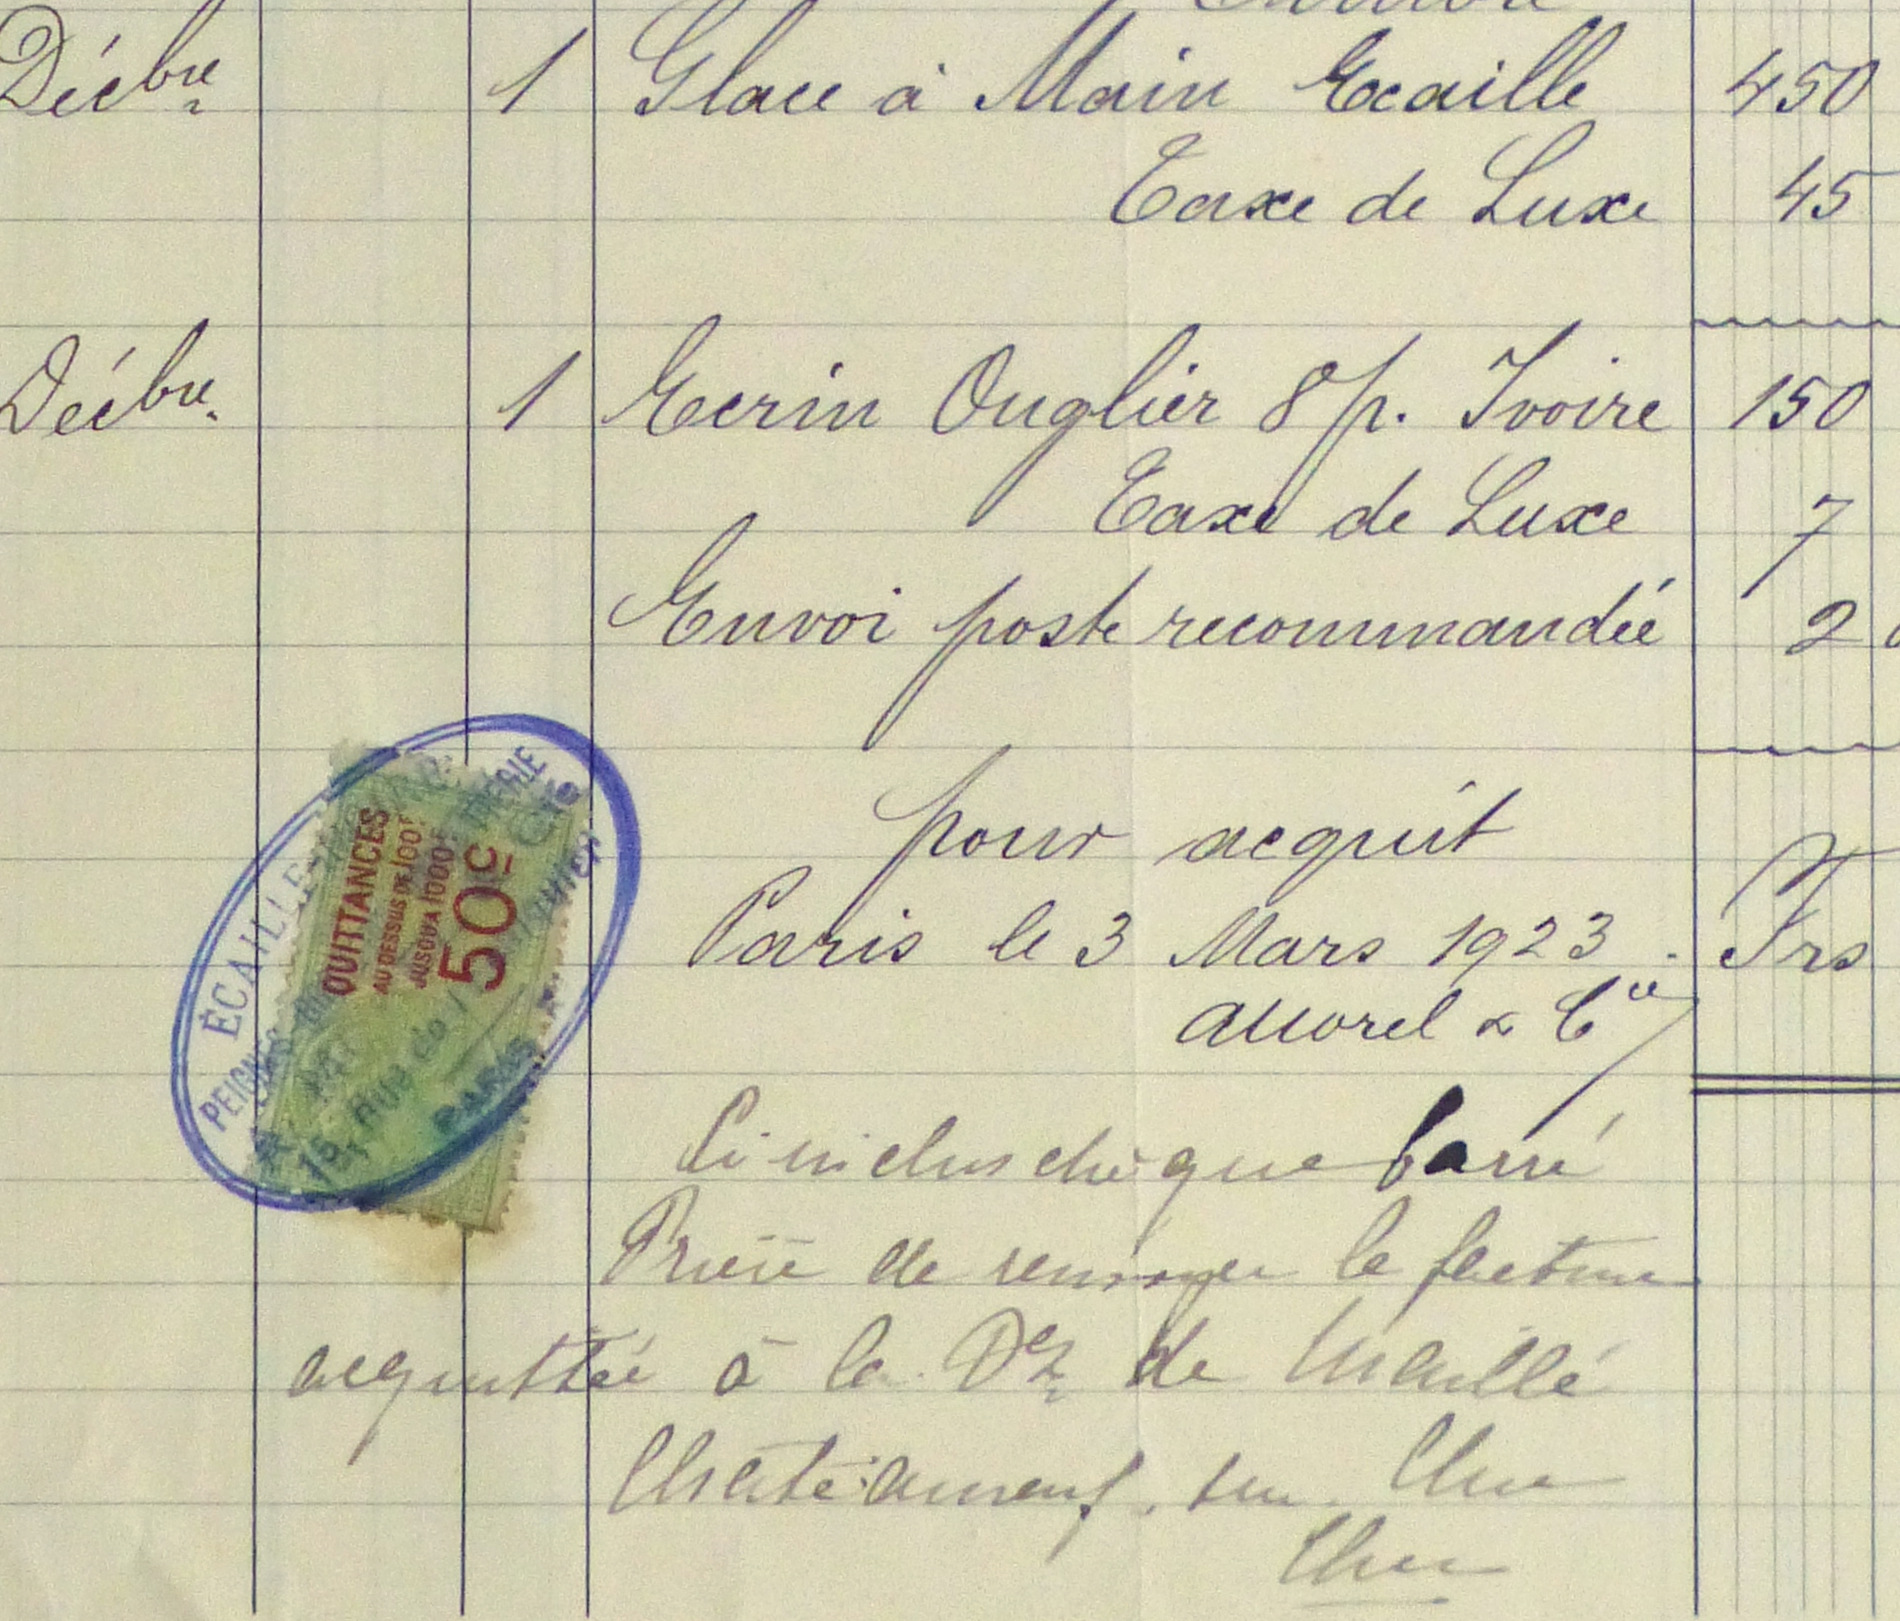 Duchess of Maillé Fine Linens Receipt, 1928-detail-10557M